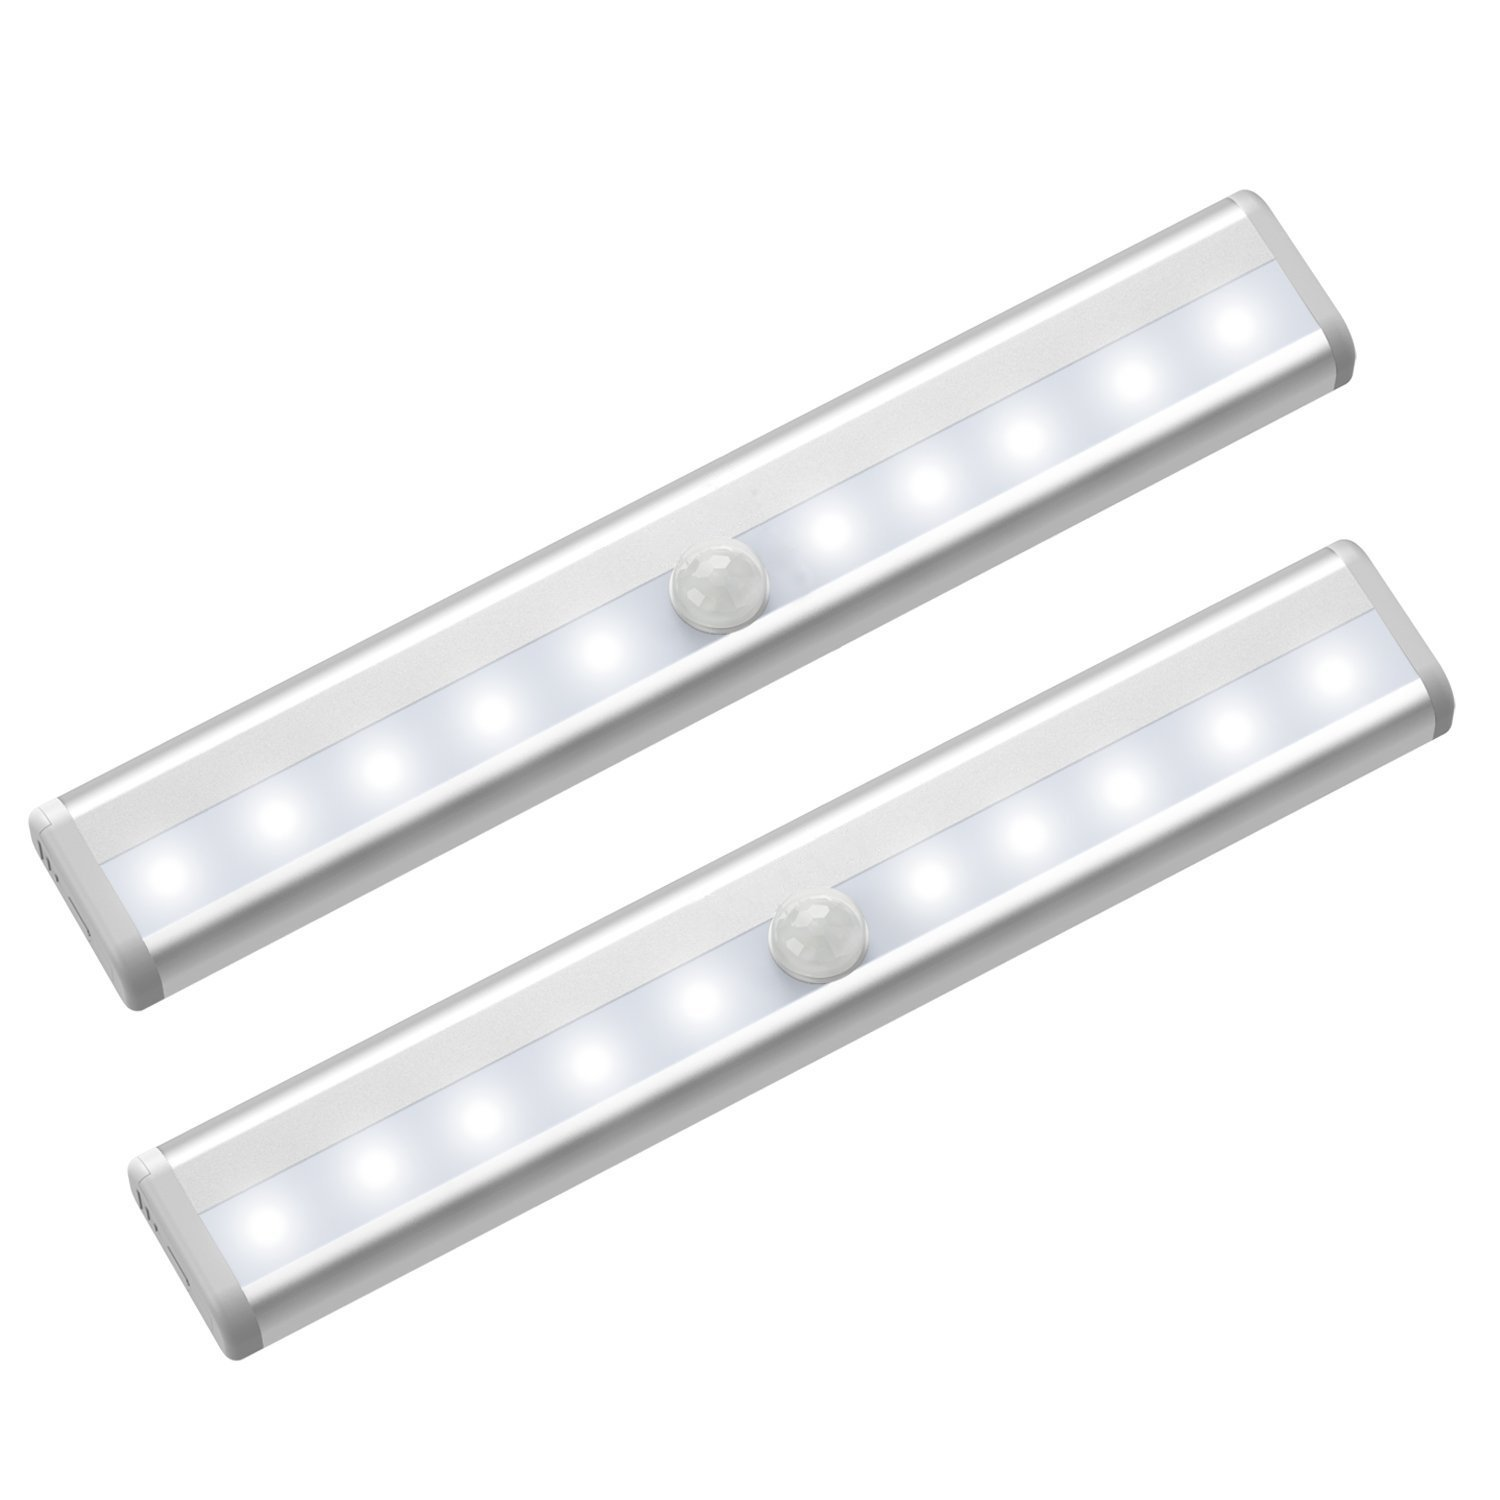 FEICAN Motion Sensor Closet Lights,Cabinet Light,DIY Stick-on Anywhere Portable Wireless 10 LED Wardrobe/Stairs/Step Light Bar,LED Night Light,Safe Lights with Magnetic Strip(2 Pack,Battery Operated)